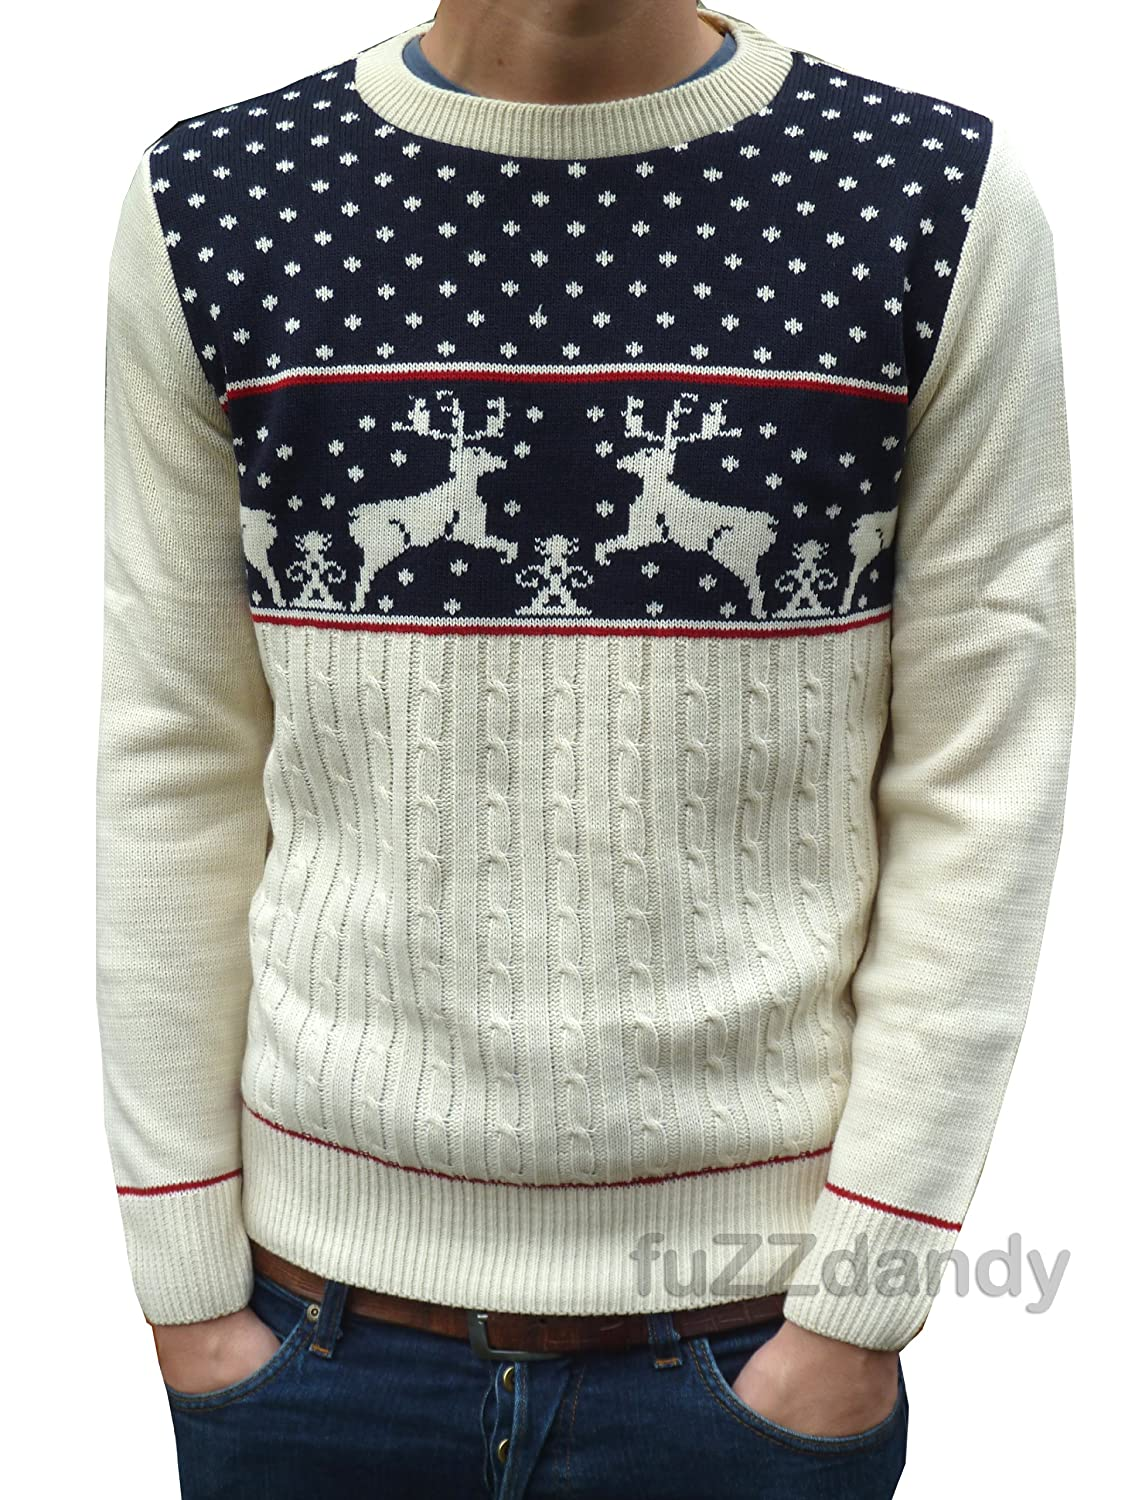 Men's Vintage Style Sweaters – 1920s to 1960s Fuzzdandy - Mens Kitsch Reindeer Christmas Jumper Sweater Navy Xs S M L Xl $42.00 AT vintagedancer.com